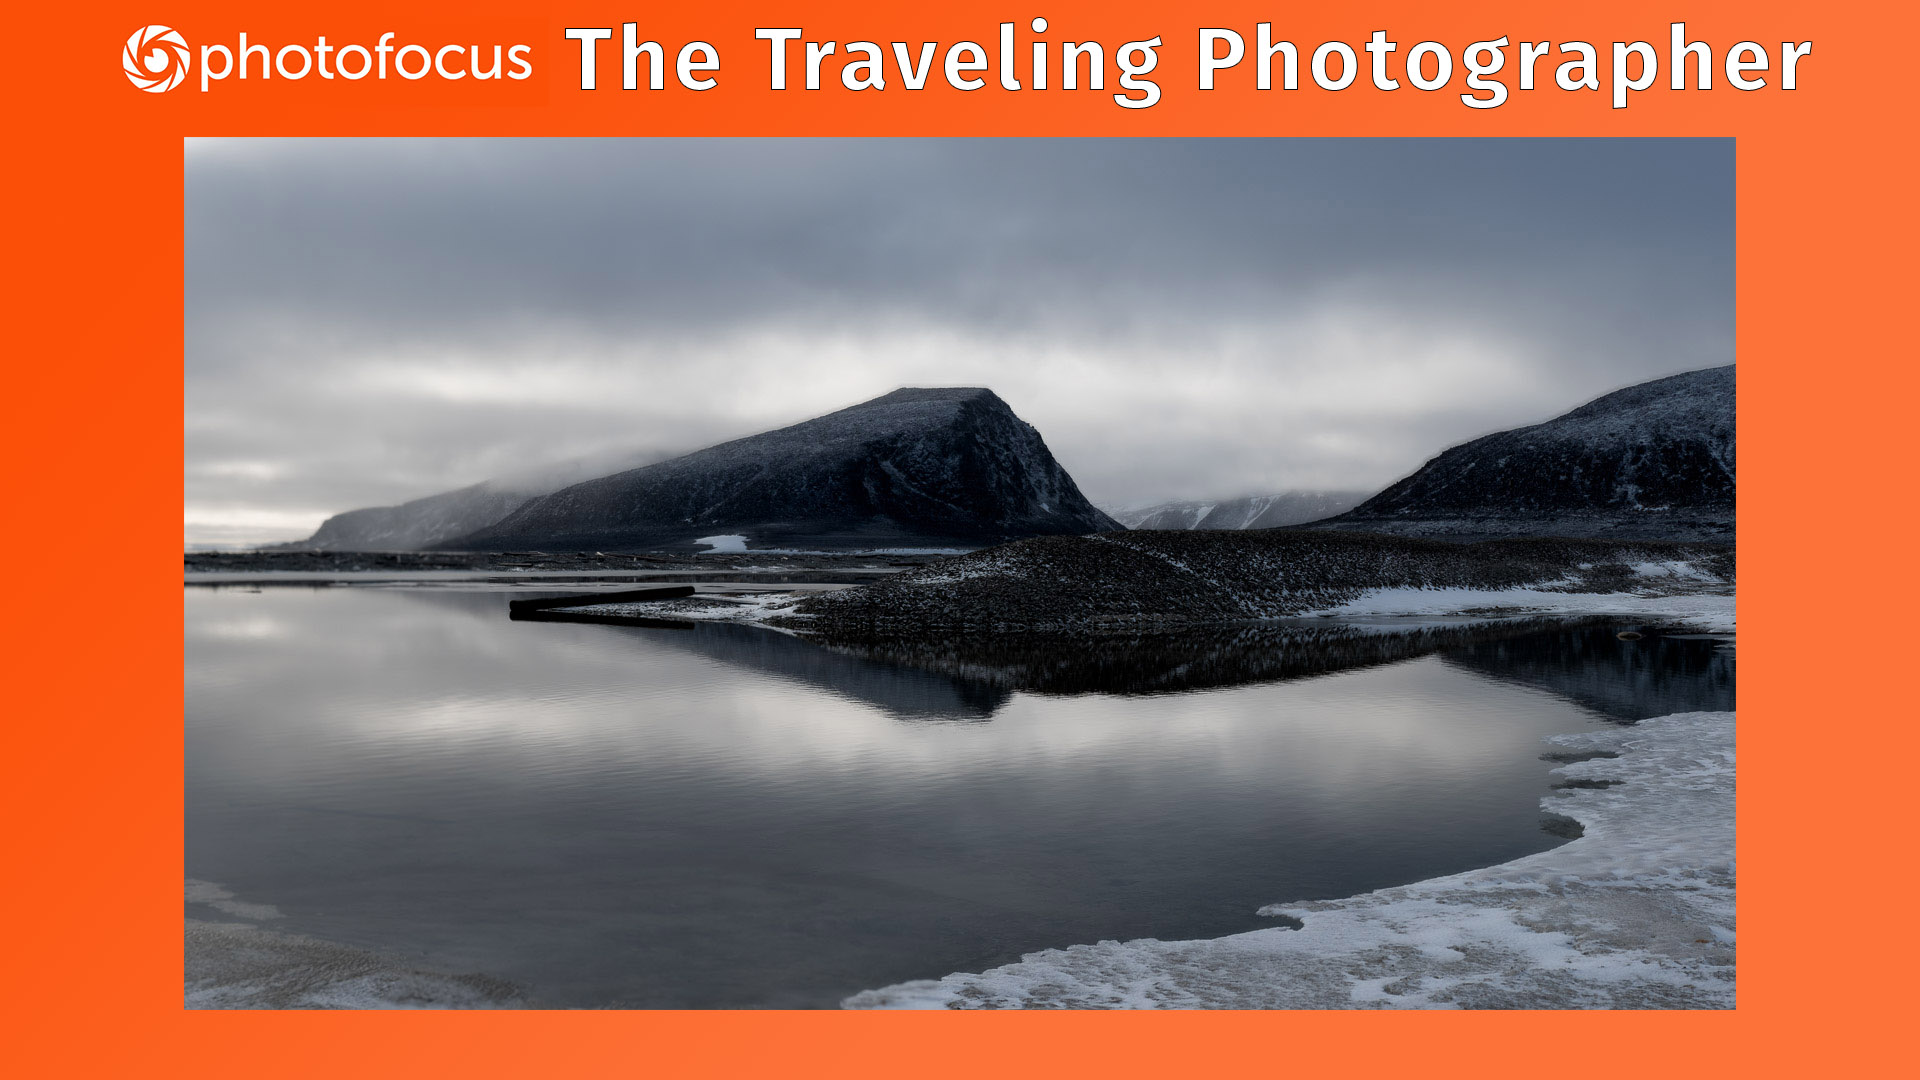 Shooting in Svalbard: Part 3 (What camera gear to bring?) | Photofocus